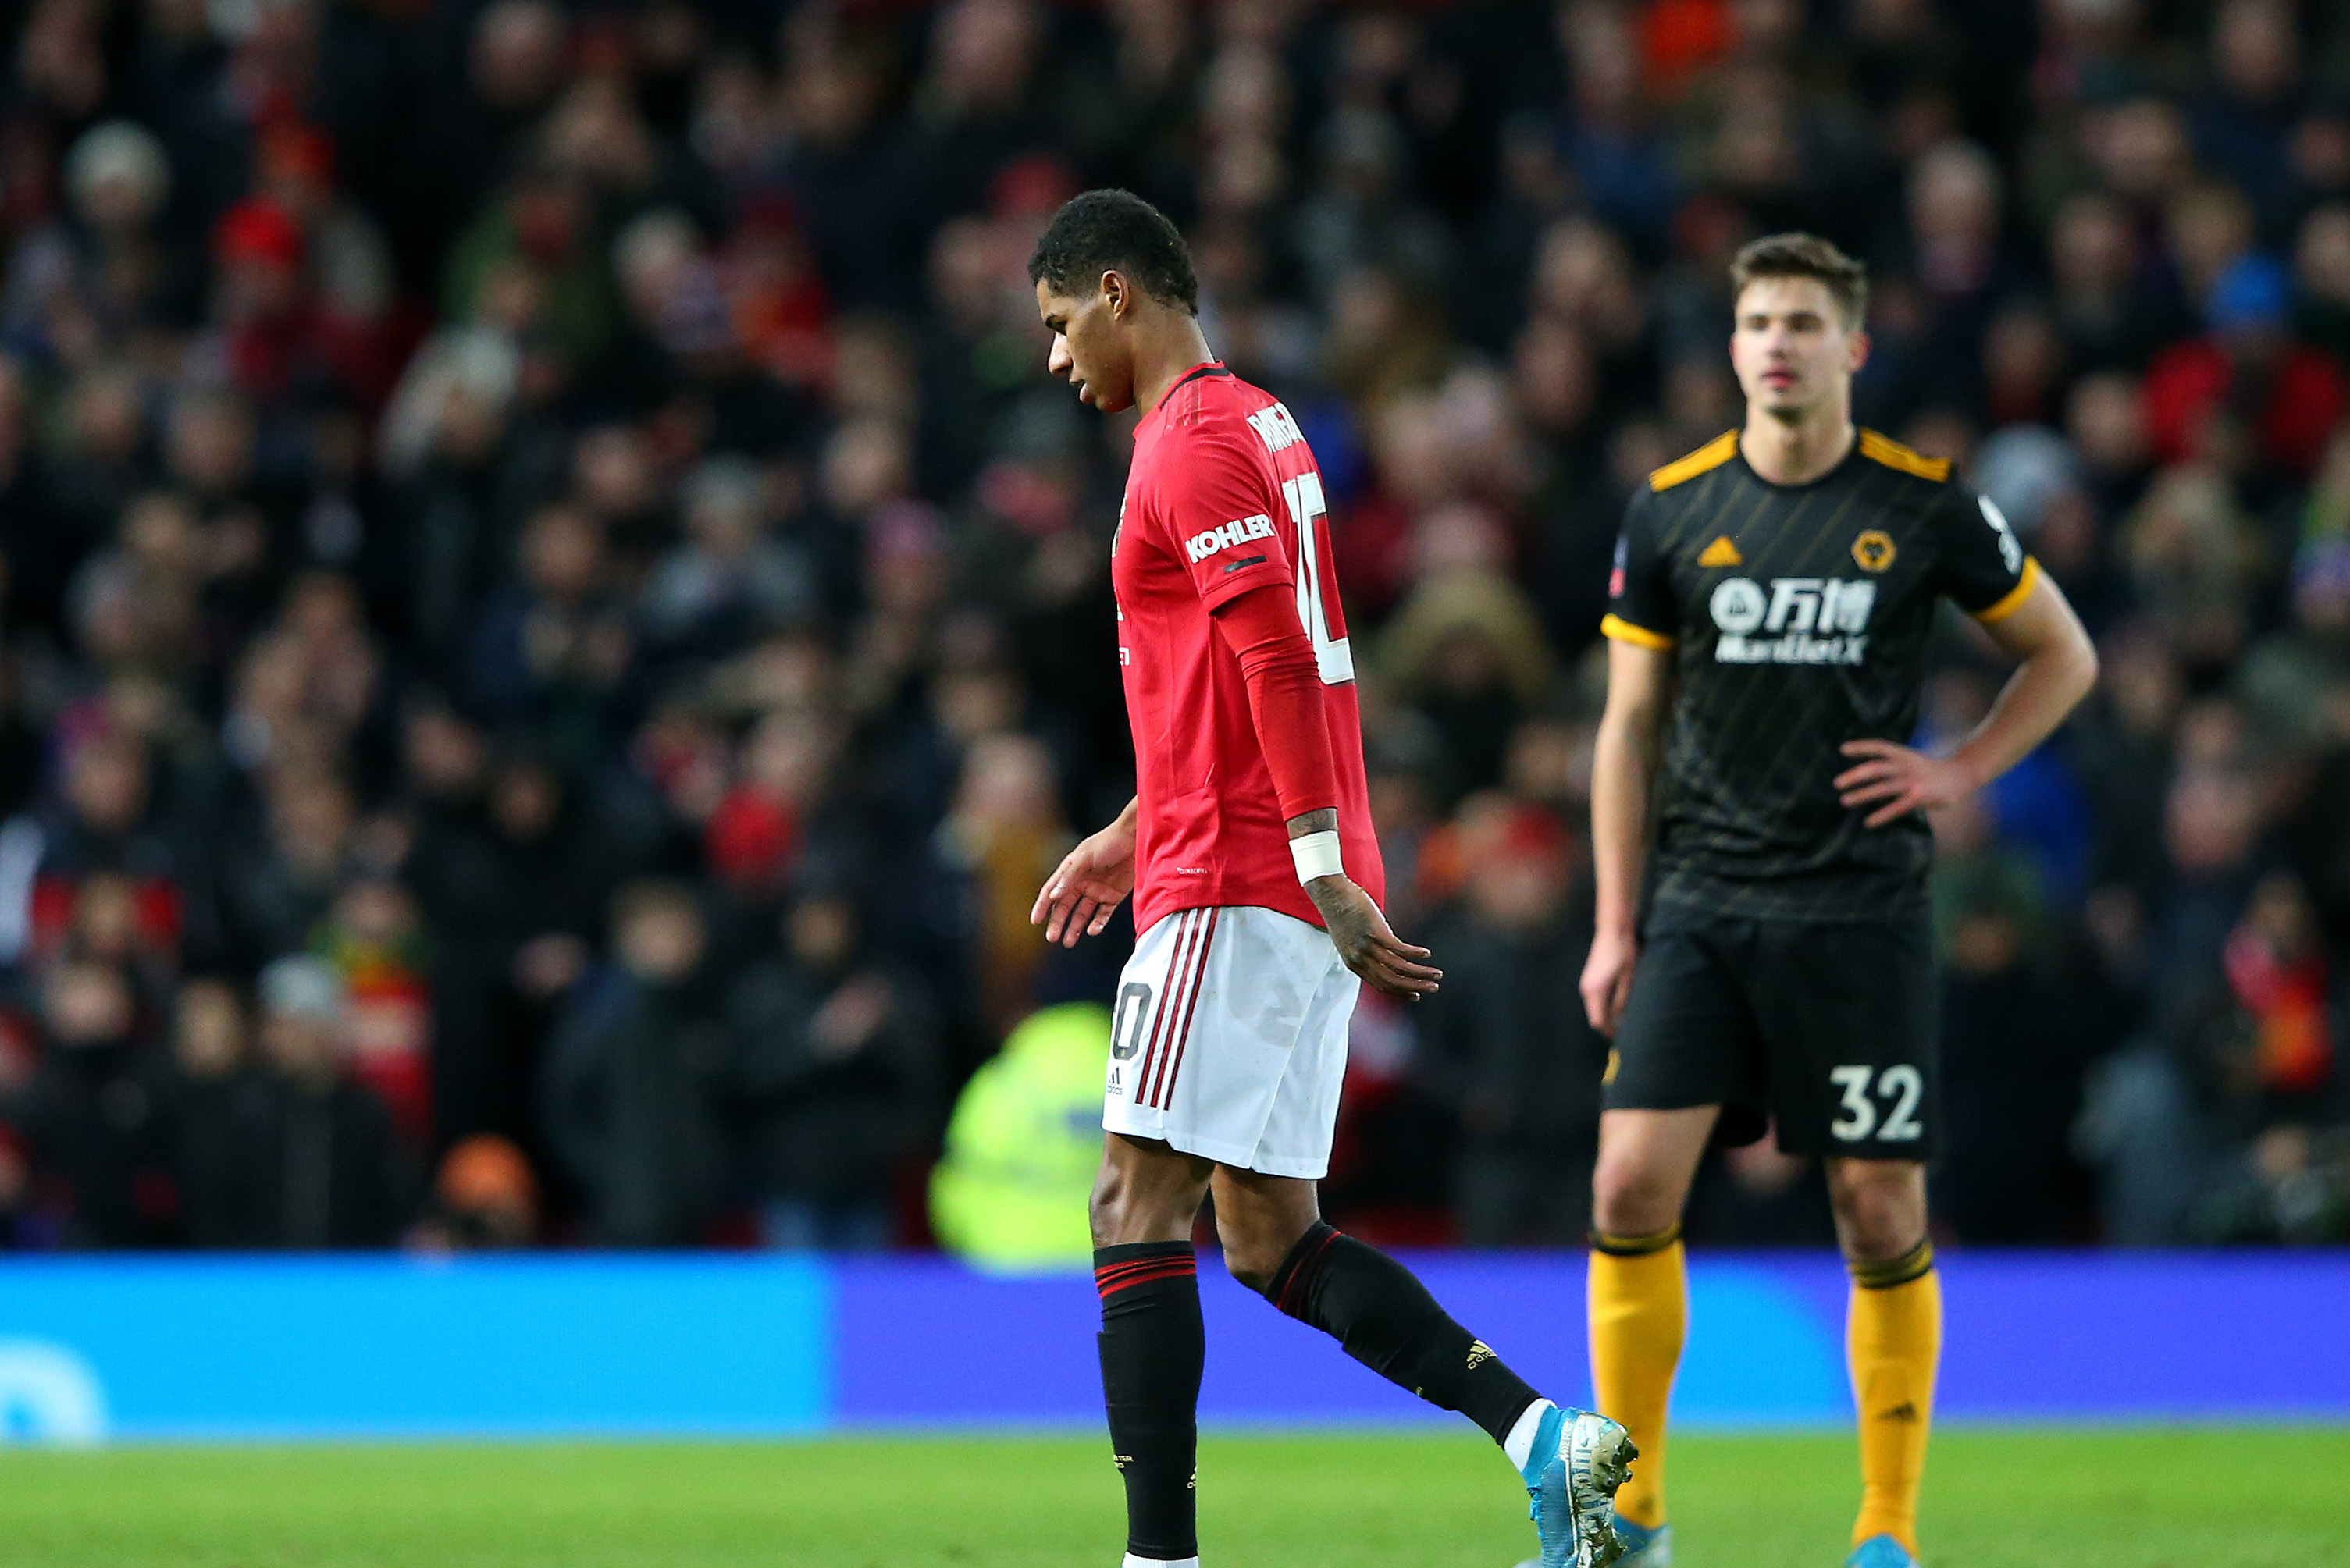 Manchester United S Marcus Rashford Exits Vs Wolves After Suffering Injury Bleacher Report Latest News Videos And Highlights